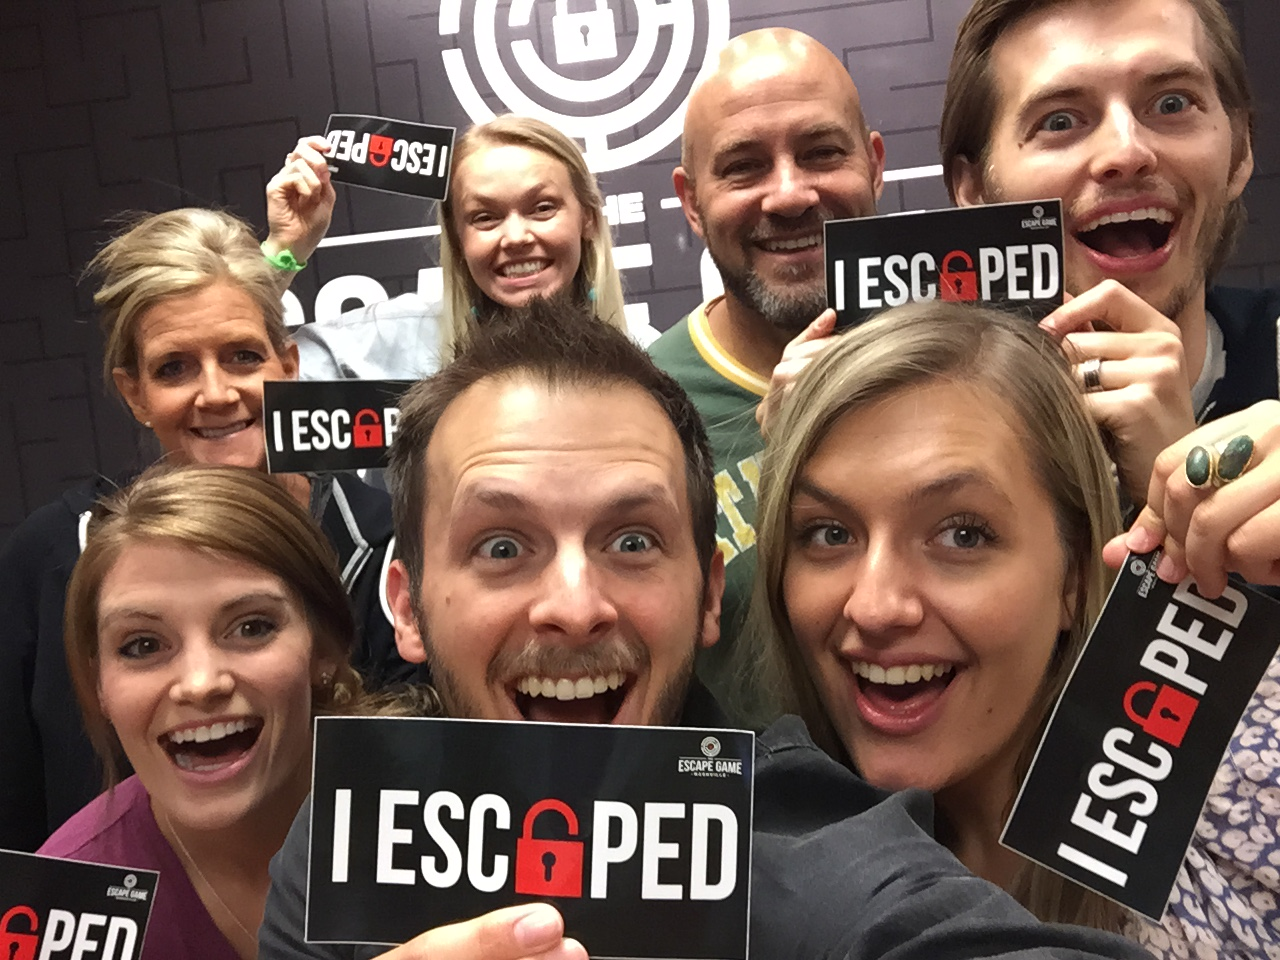 escape-game-nashville-i-escaped